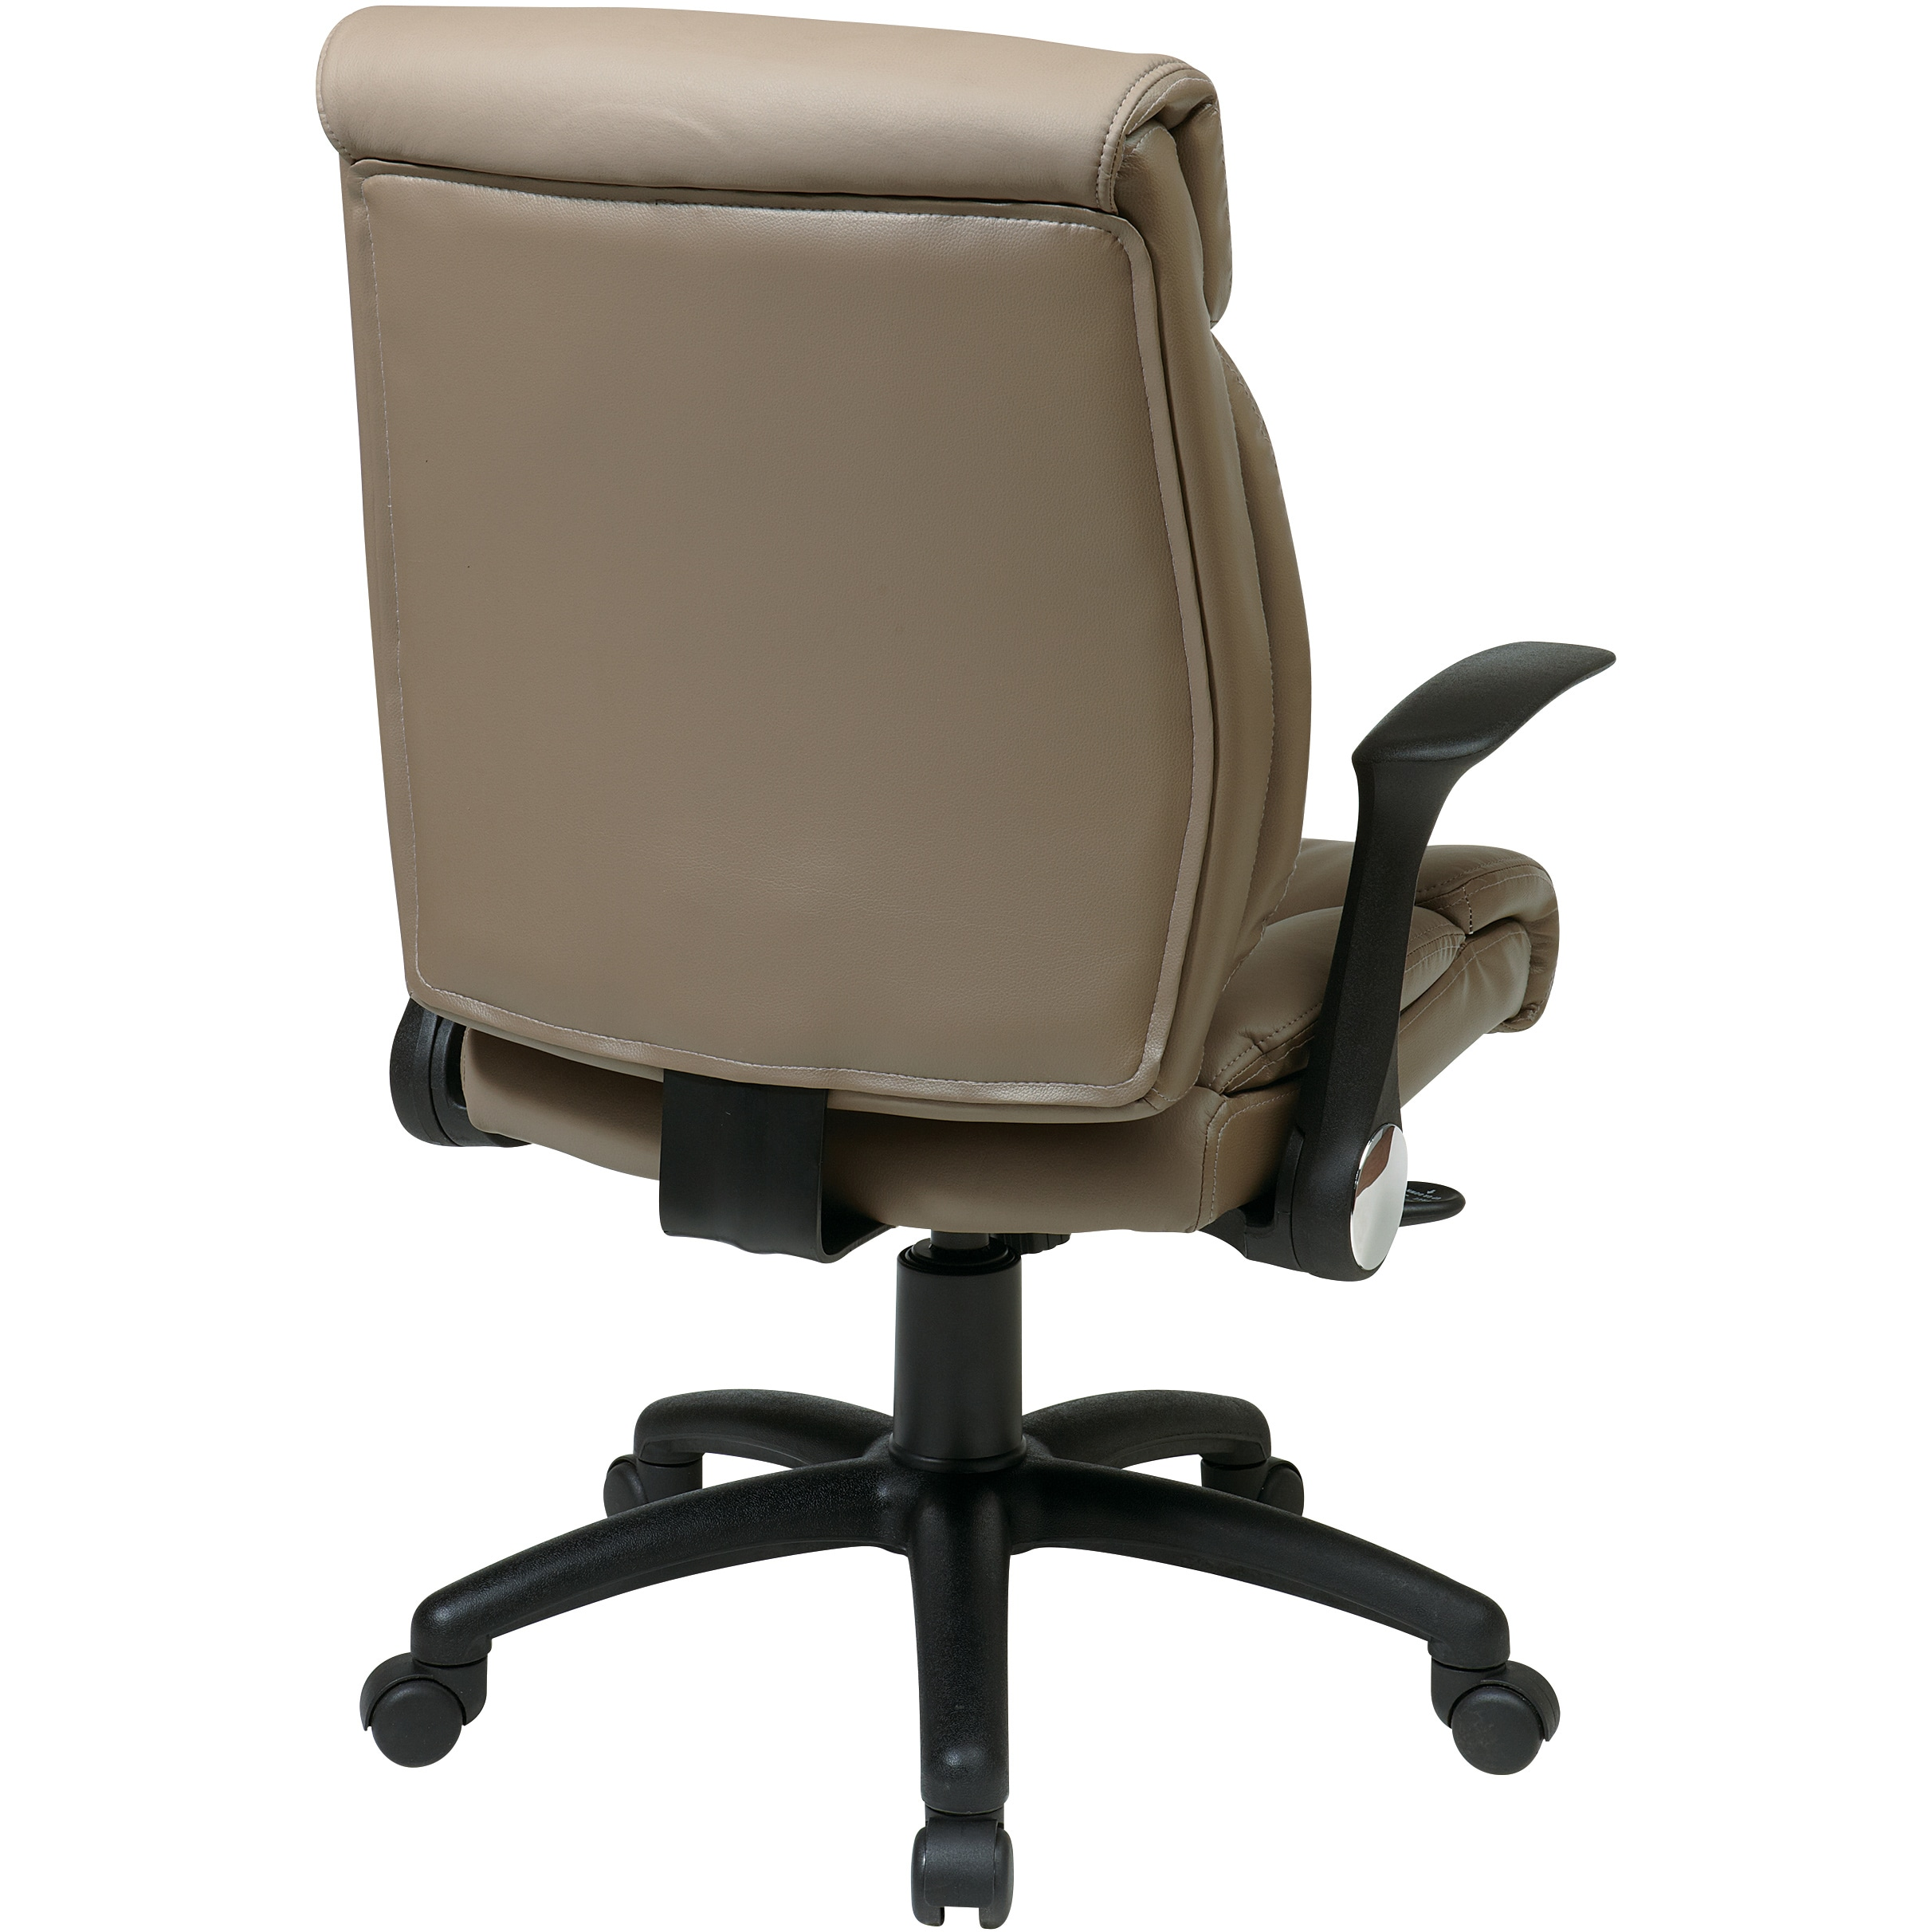 Shop Office Star Products U0027Work Smartu0027 Faux Leather Seat And Back Manageru0027s  Chair   Free Shipping Today   Overstock.com   7986456